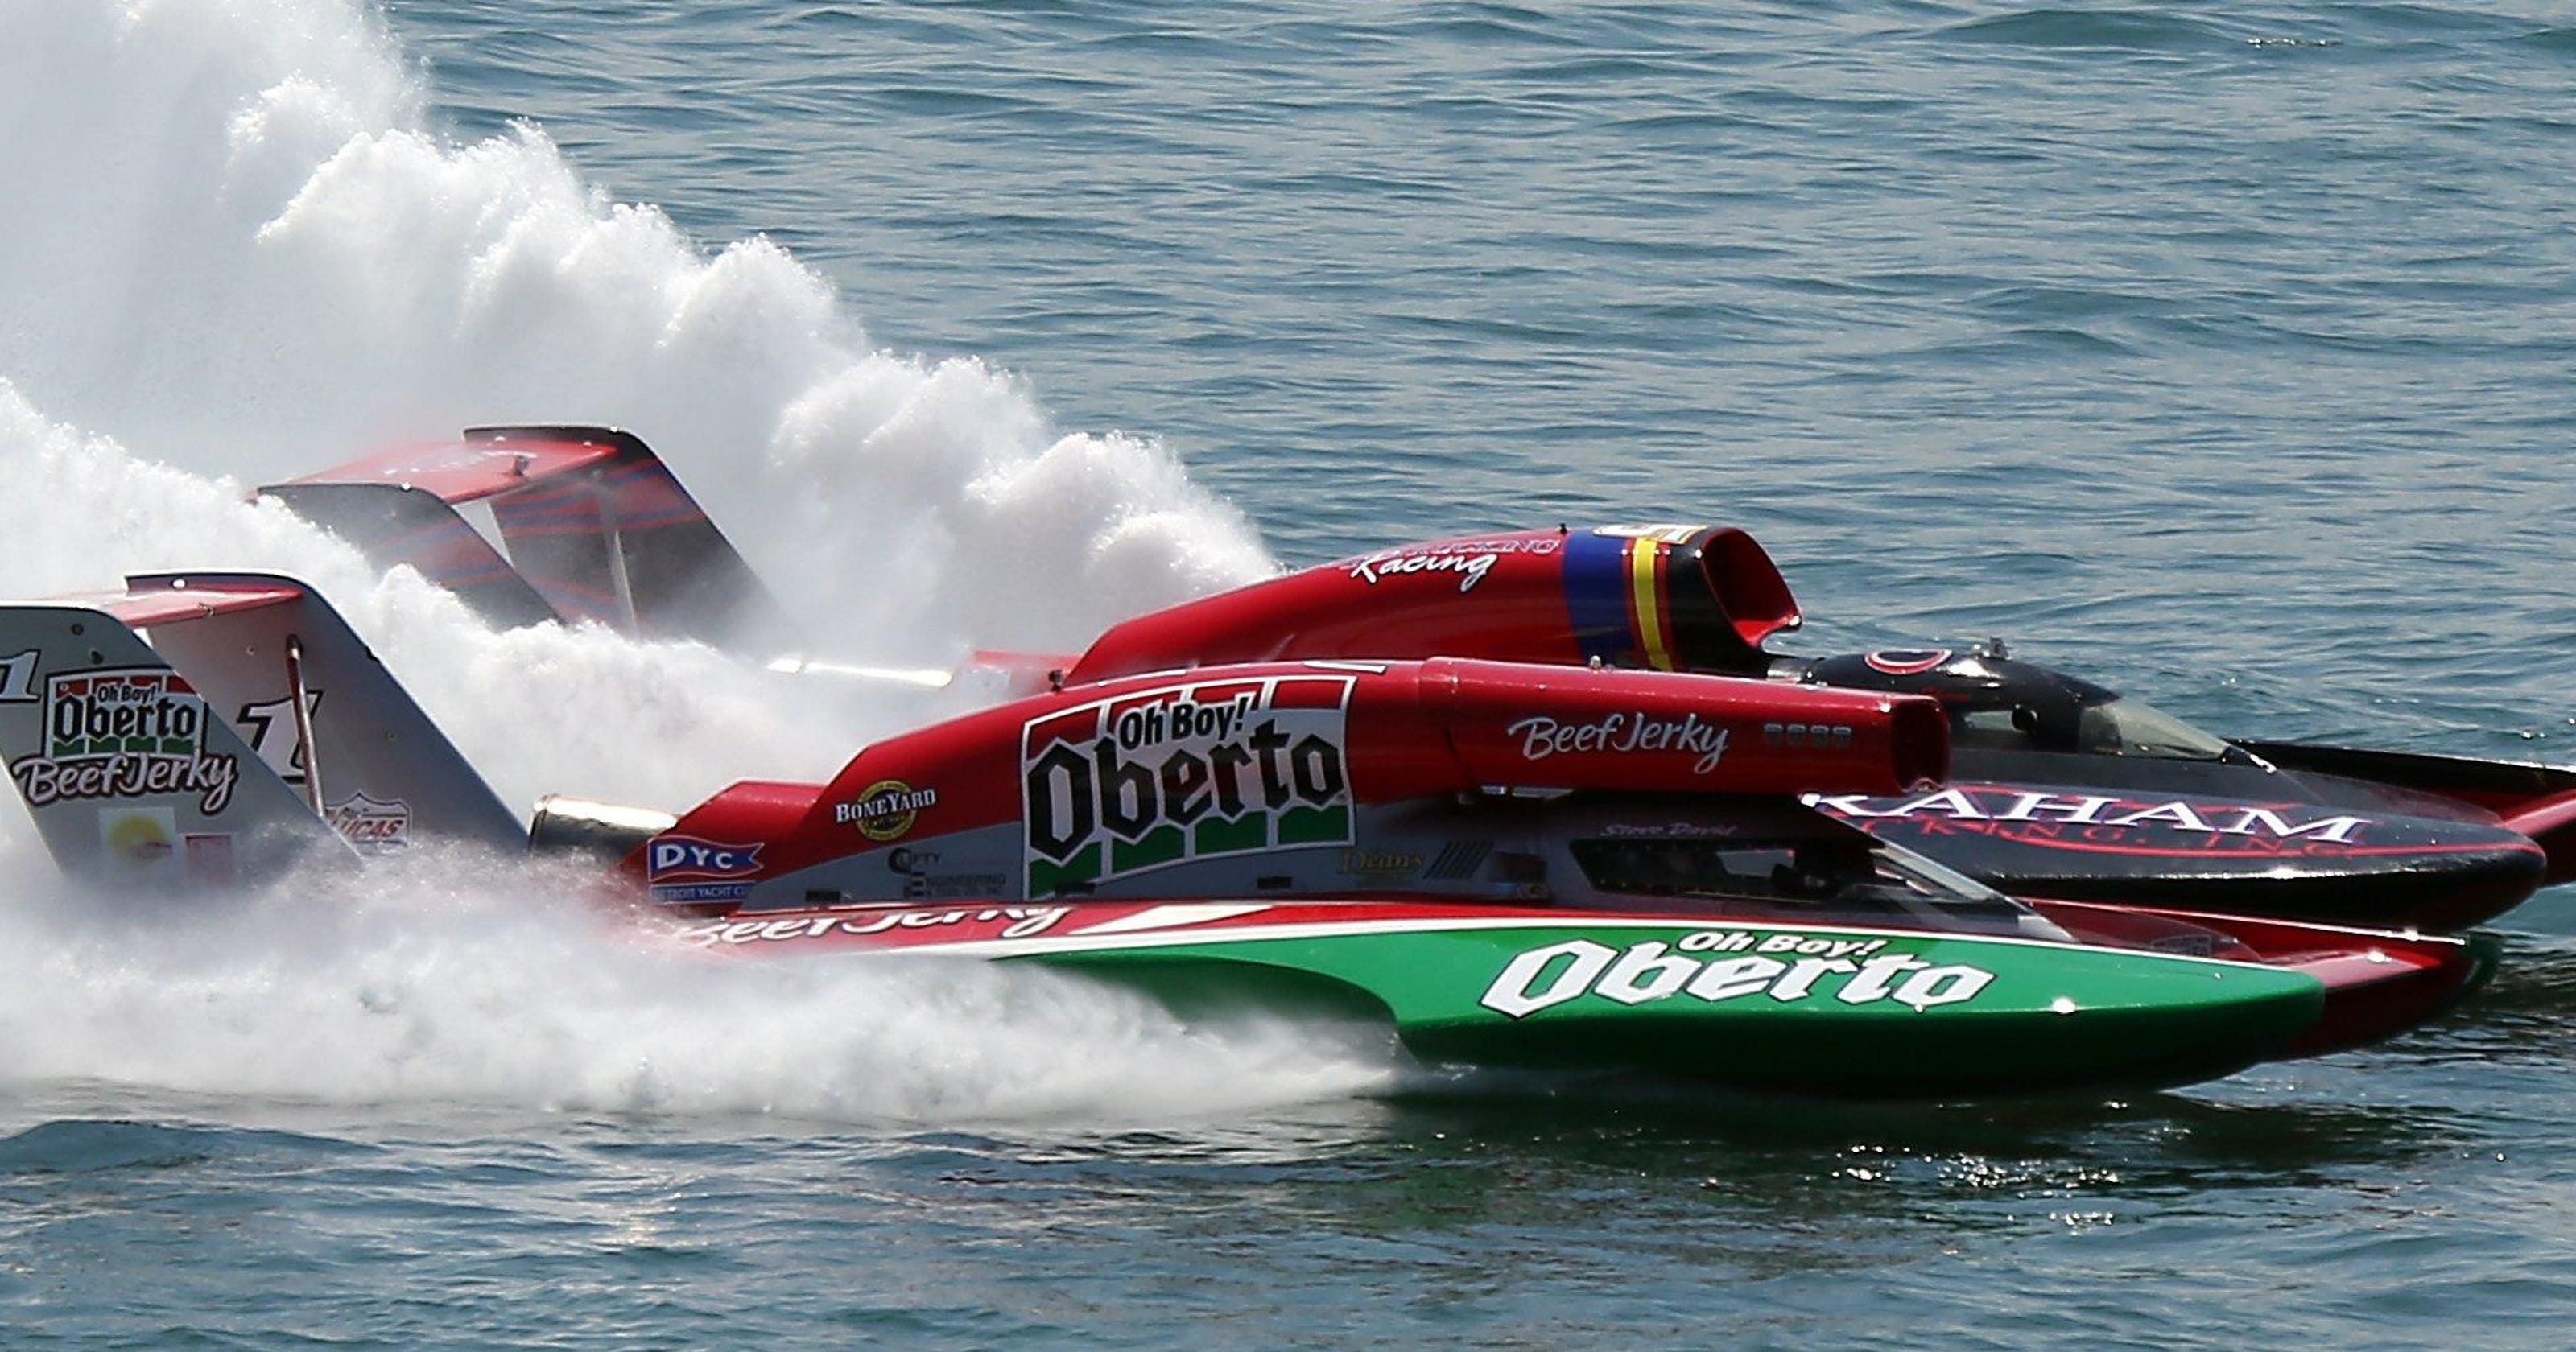 Steve David moves quickly, shakes things up to save hydroplane racing